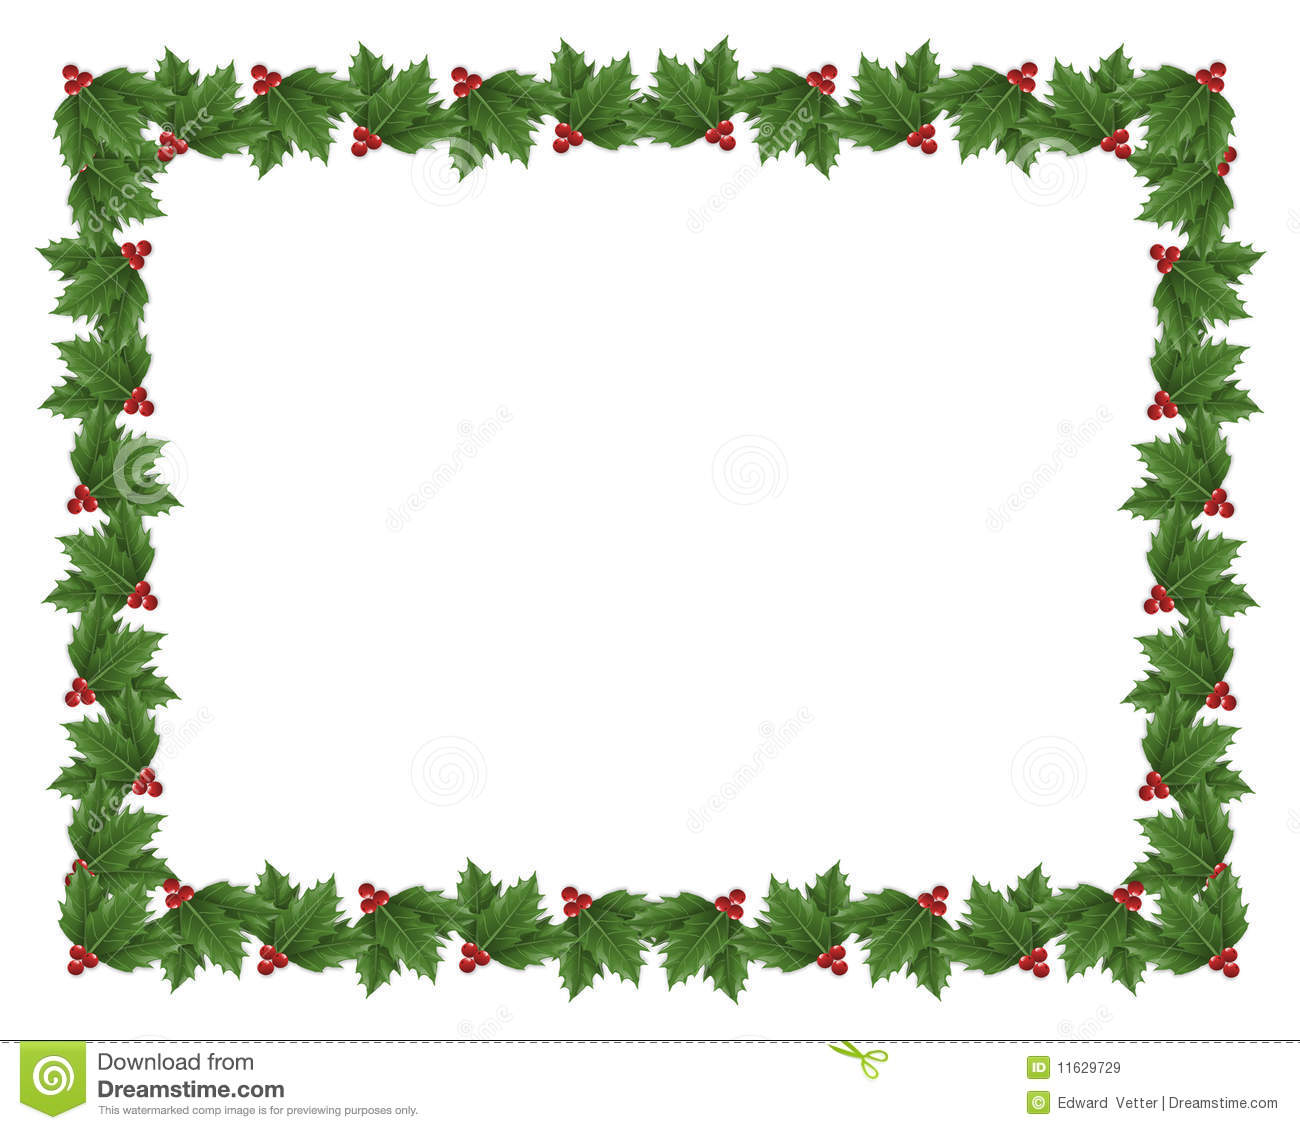 Christmas holly border illustration stock illustration image 11629729 for Holly and ivy border